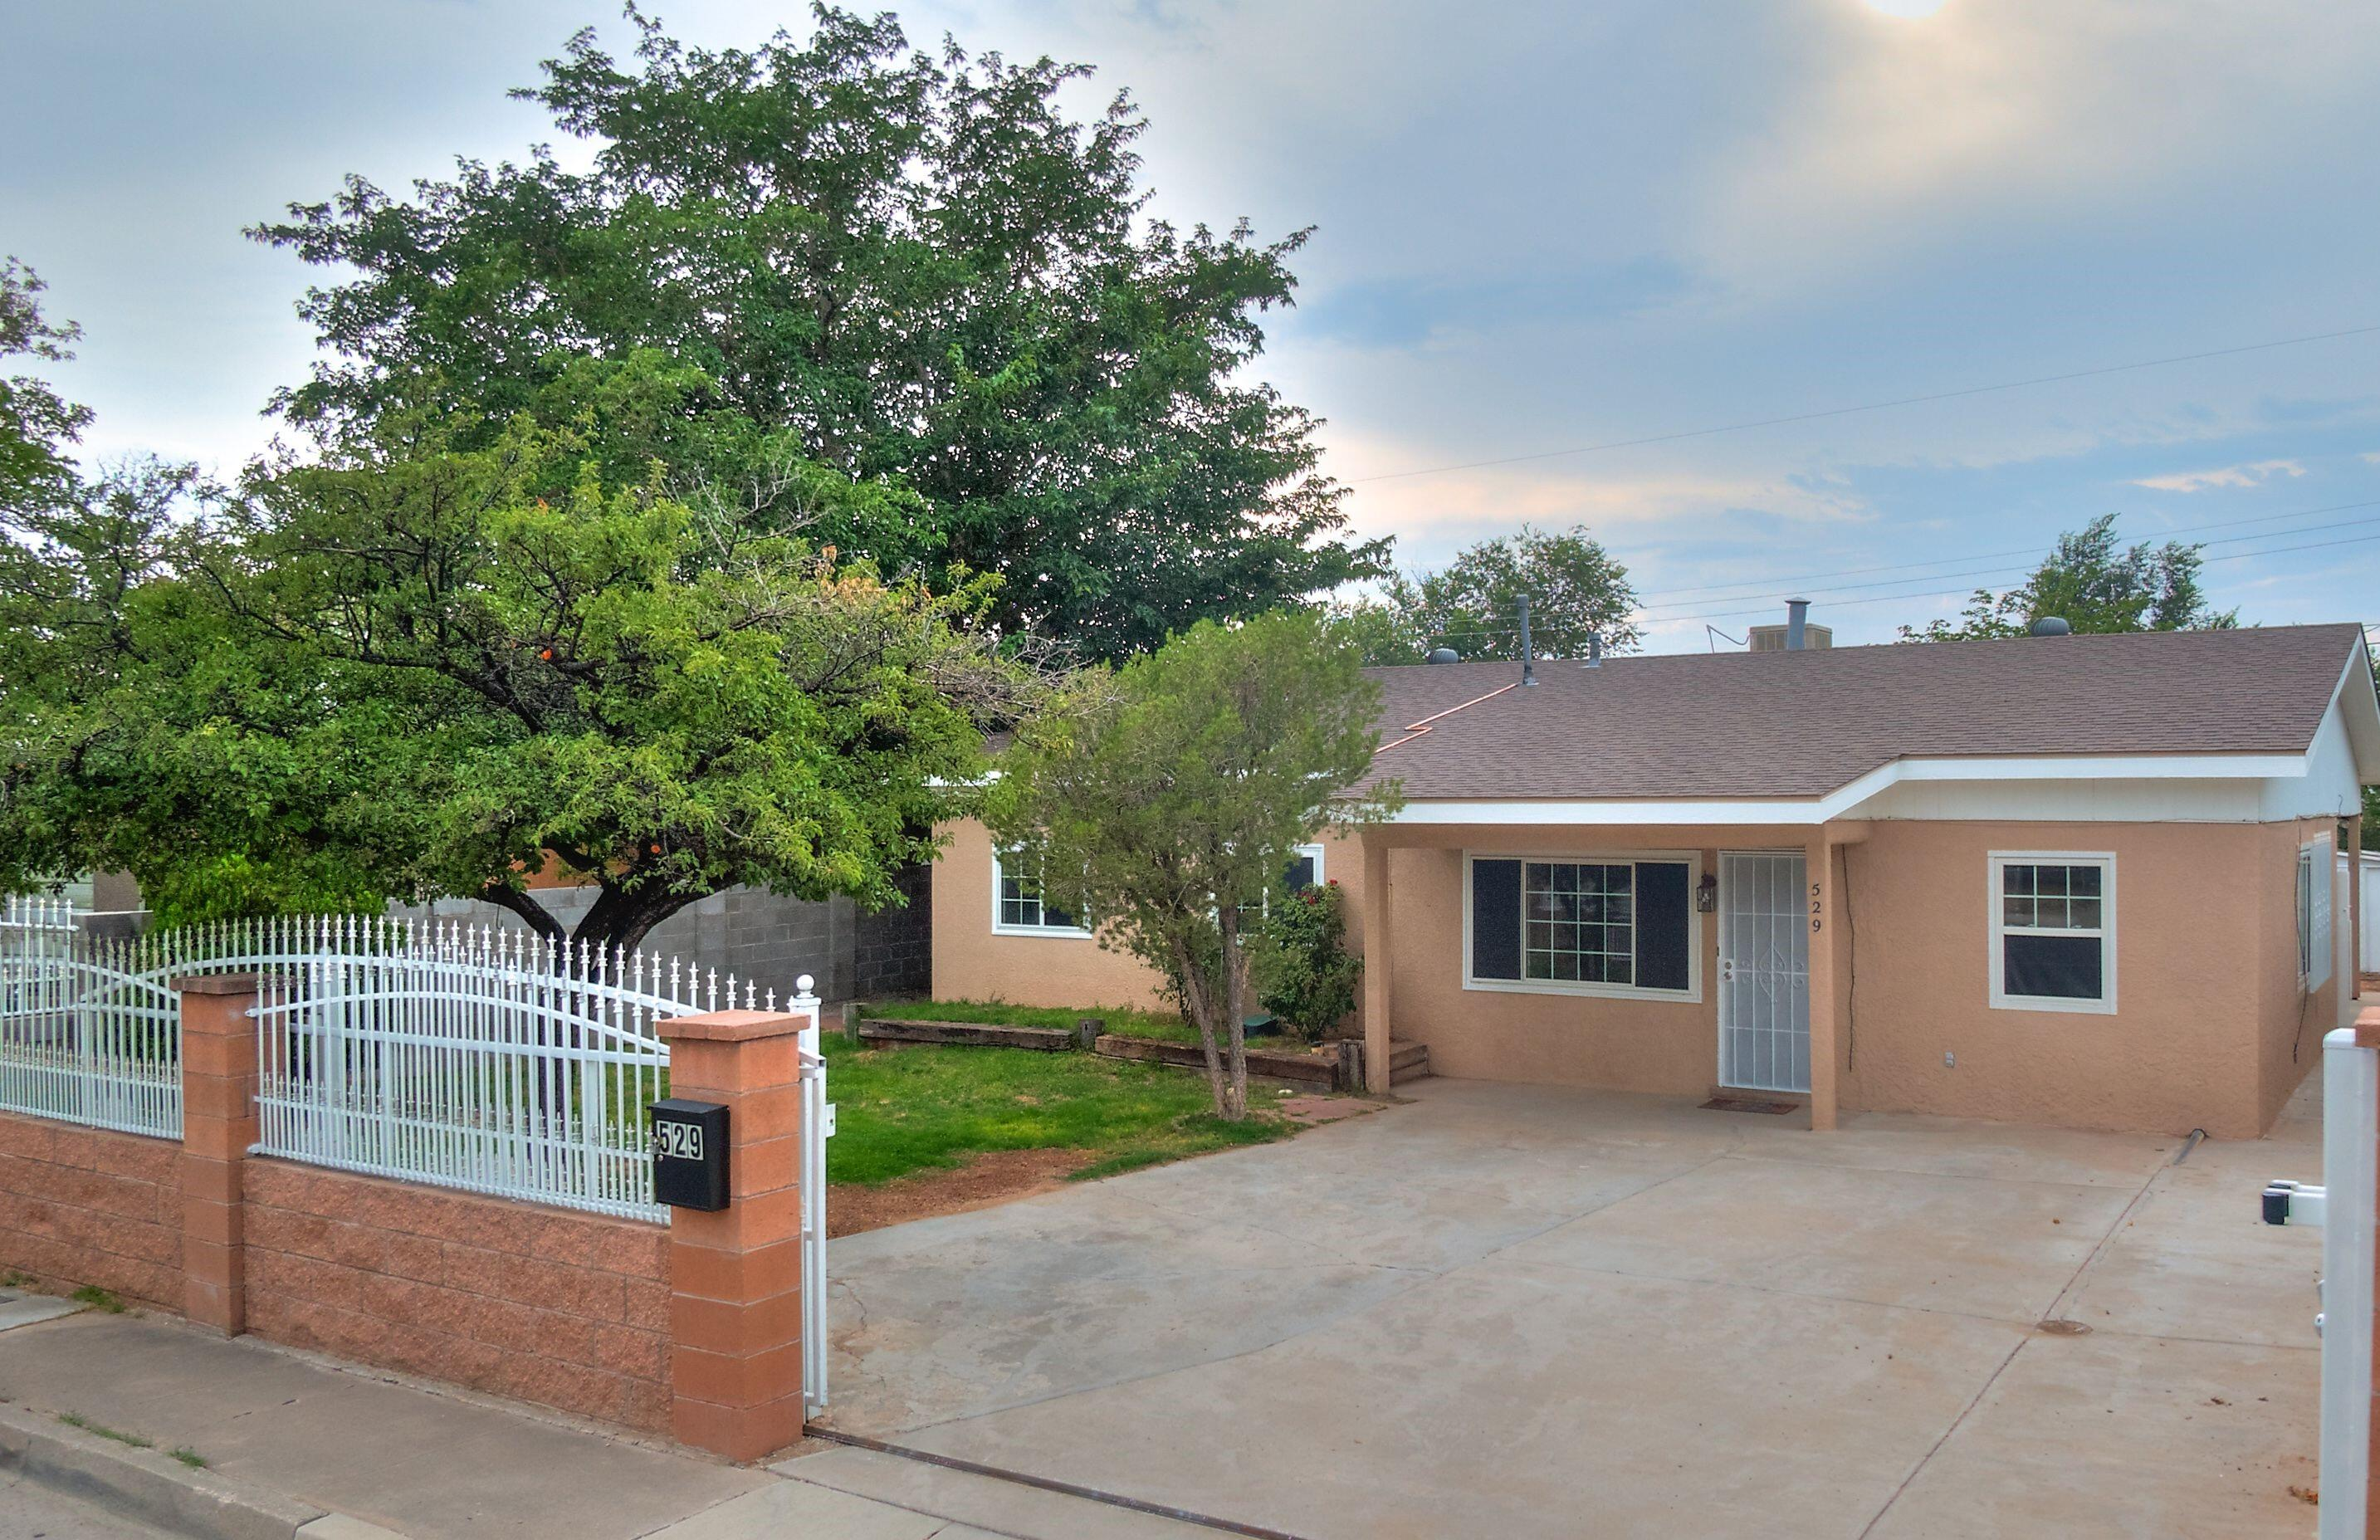 This property truly stands out ! You feel the love and pride of ownership the moment you walk in the front door. Your new home has a abundance of upgrades which includes new kitchen cabinets, stainless steel appliances,  remodeled bathrooms, new stucco, updated windows, roof replaced in 2019, updated tile thru out the home, updated paint, new water heater, rod iron fencing for privacy, and much more!